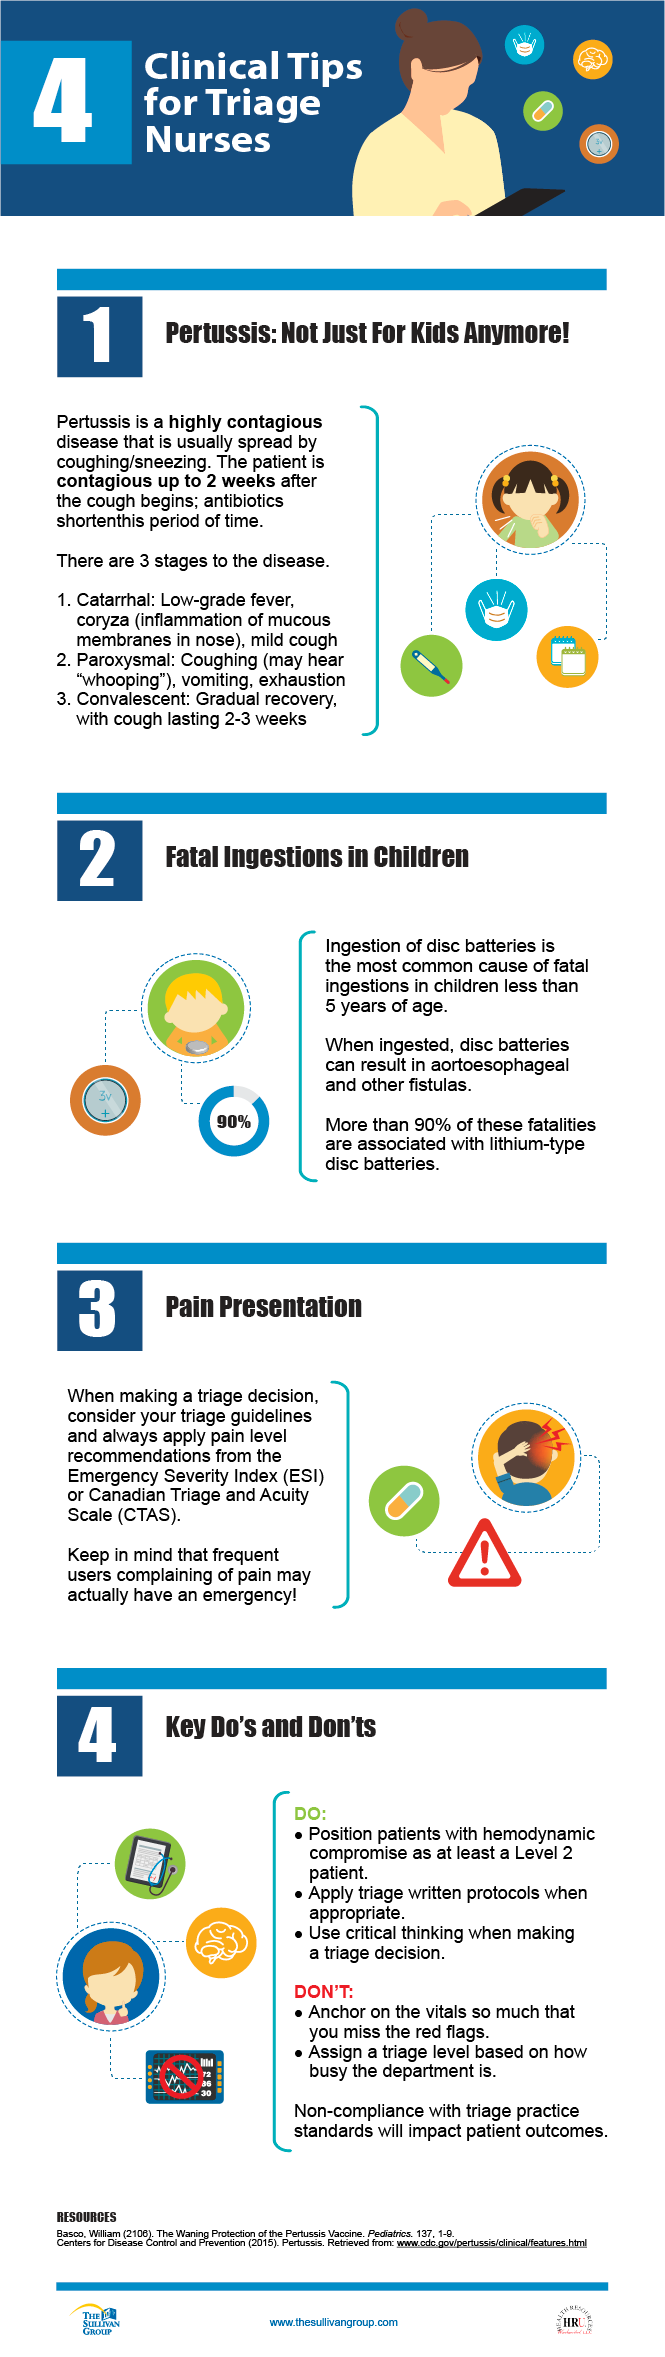 triage-tips_4-clinical-tips-for-triage-nurses-665px.png